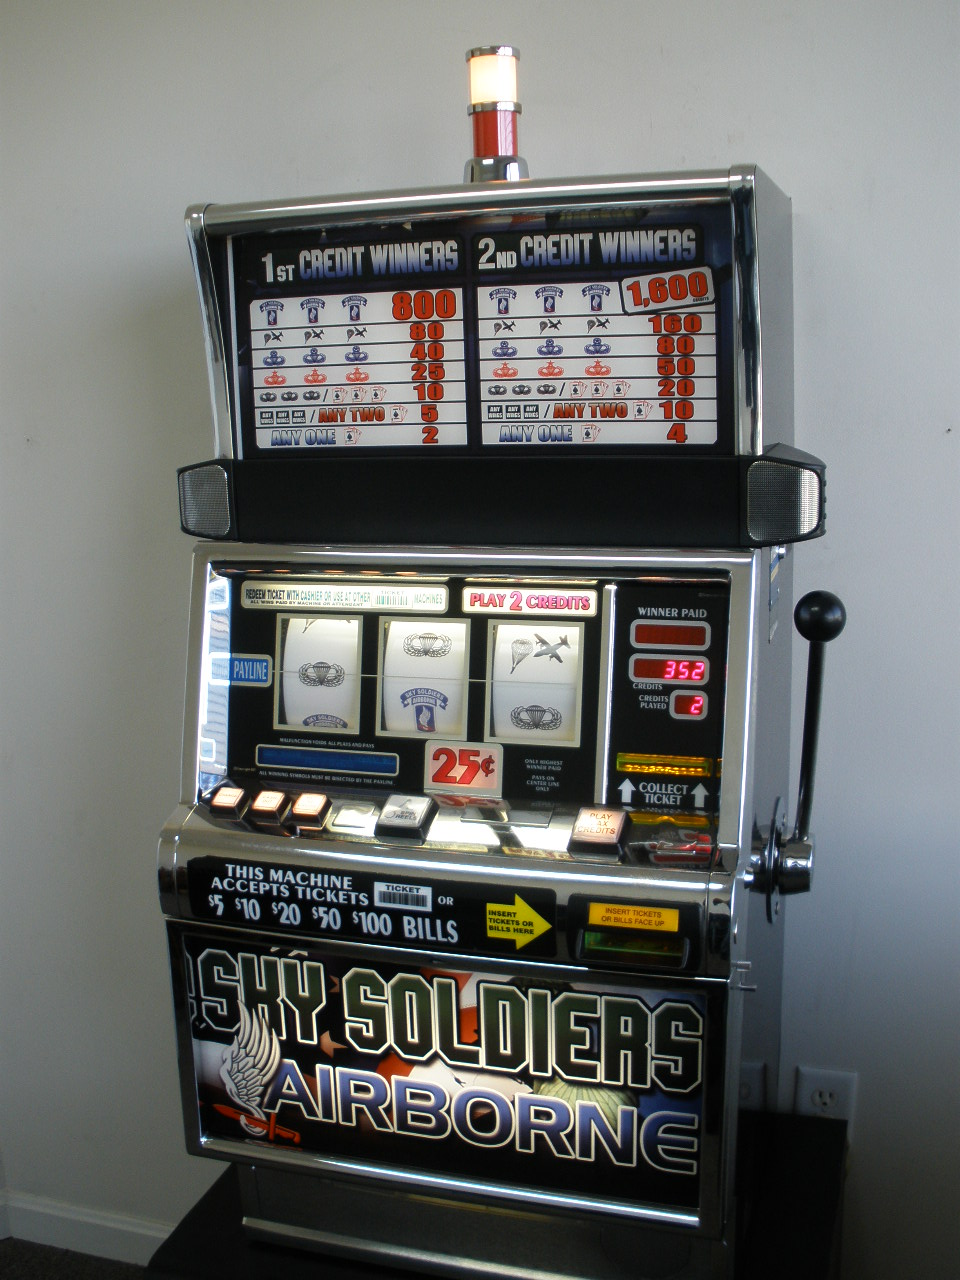 Sky Soldiers Airborne Custom Slot Machine